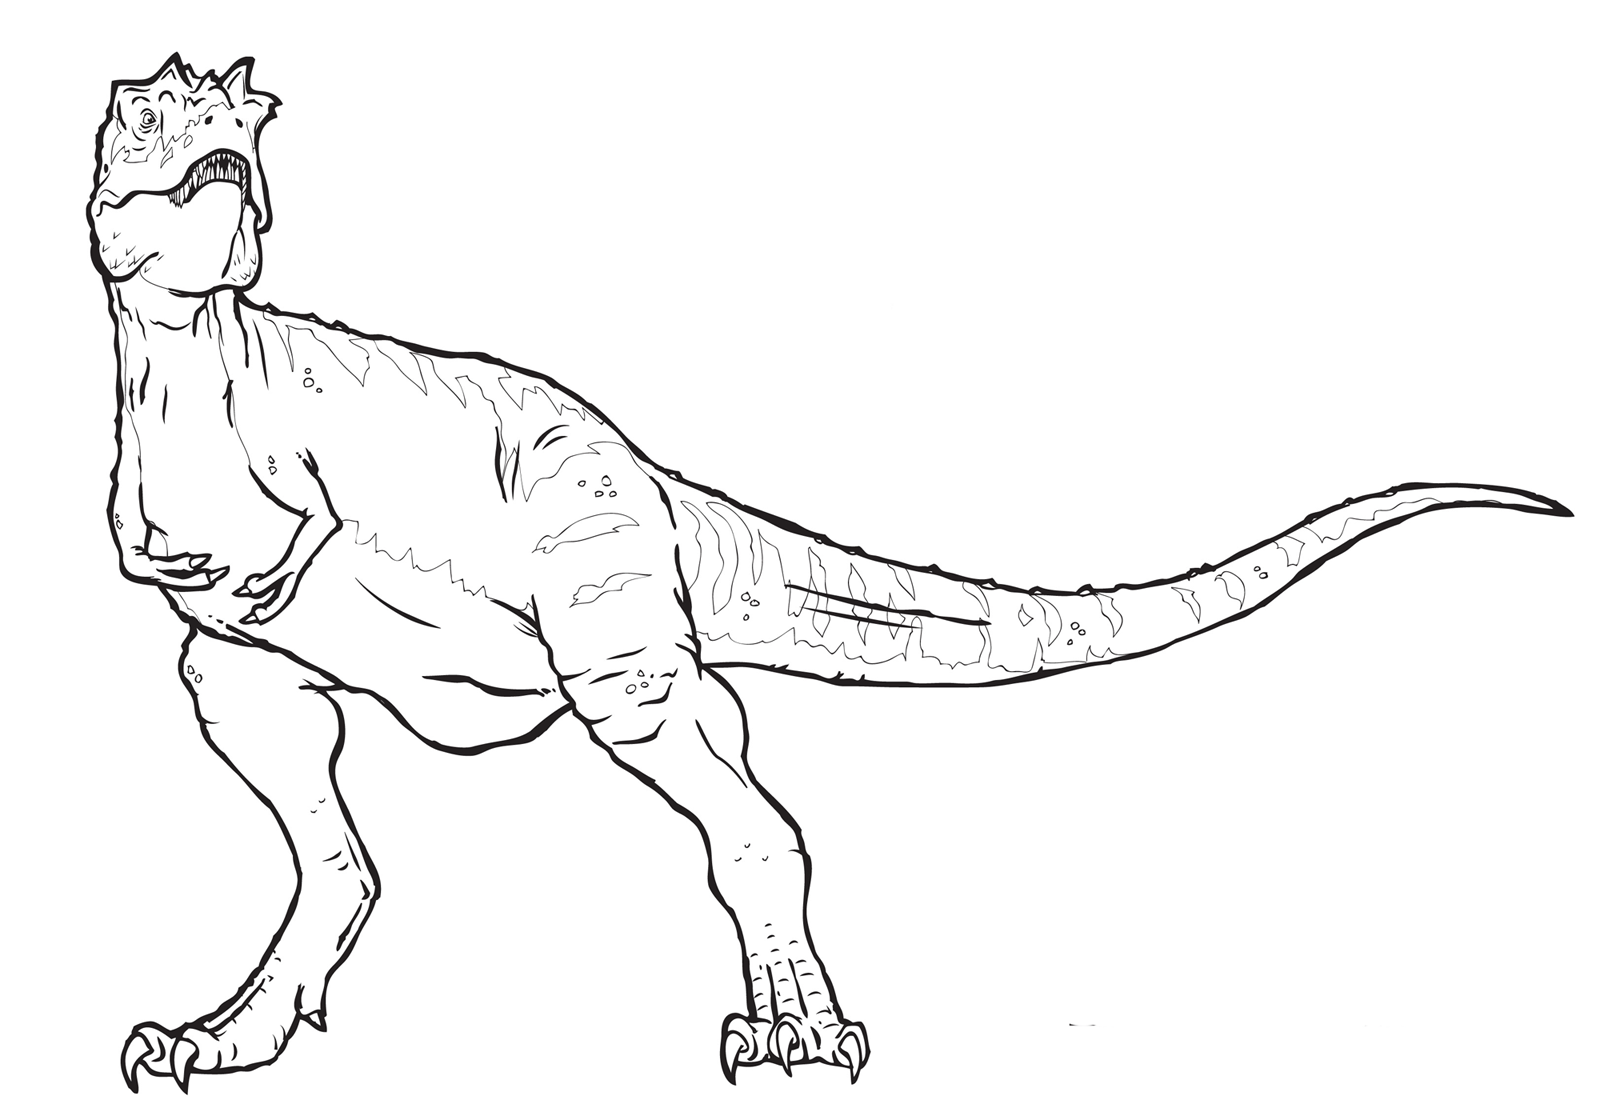 Indominus rex coloring pages sketch coloring page for Disegni da colorare dinosauri